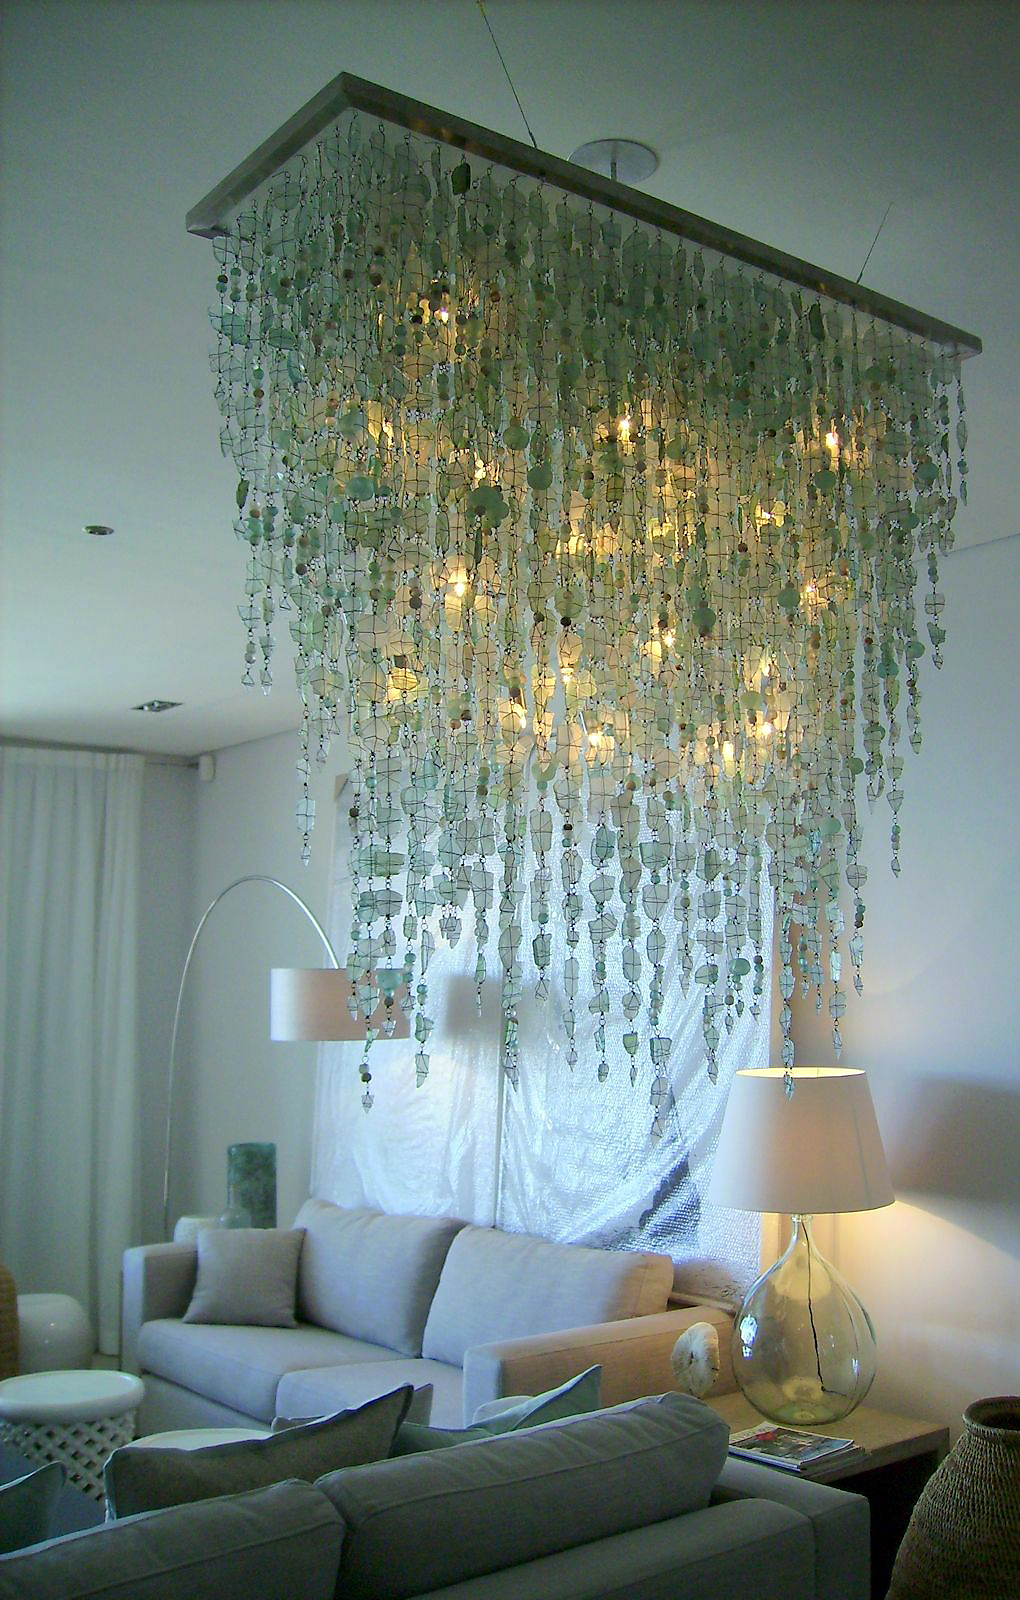 unique com ll chandelier fixture glass africa phases recycled lighting phasesafrica by light fixtures